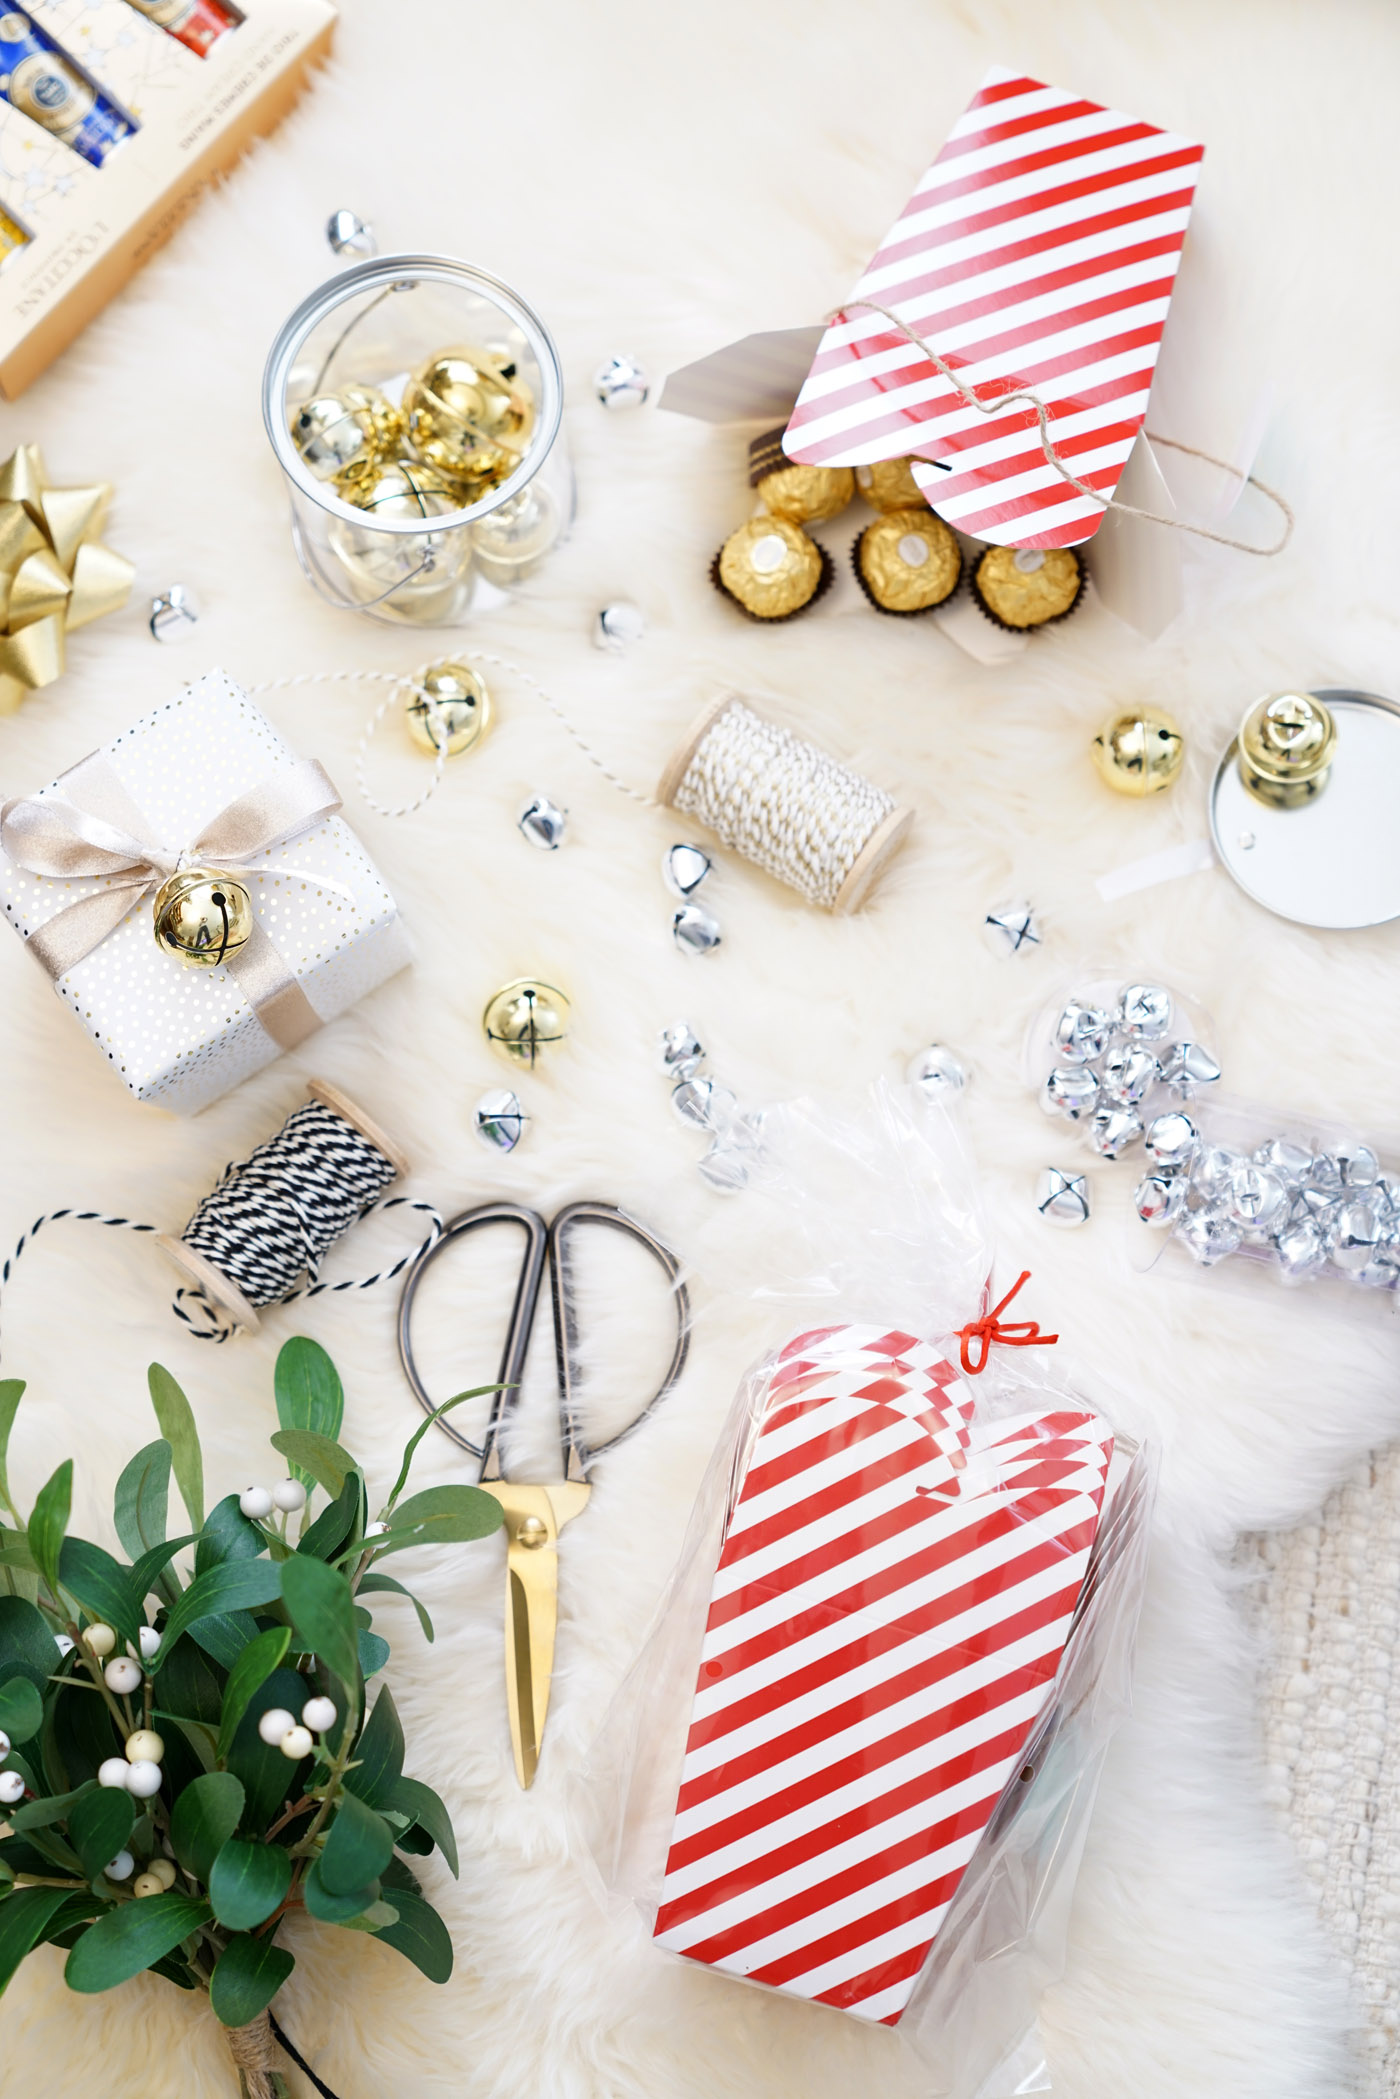 Christmas Wrapping Accessories, Bells, Take Out Boxes